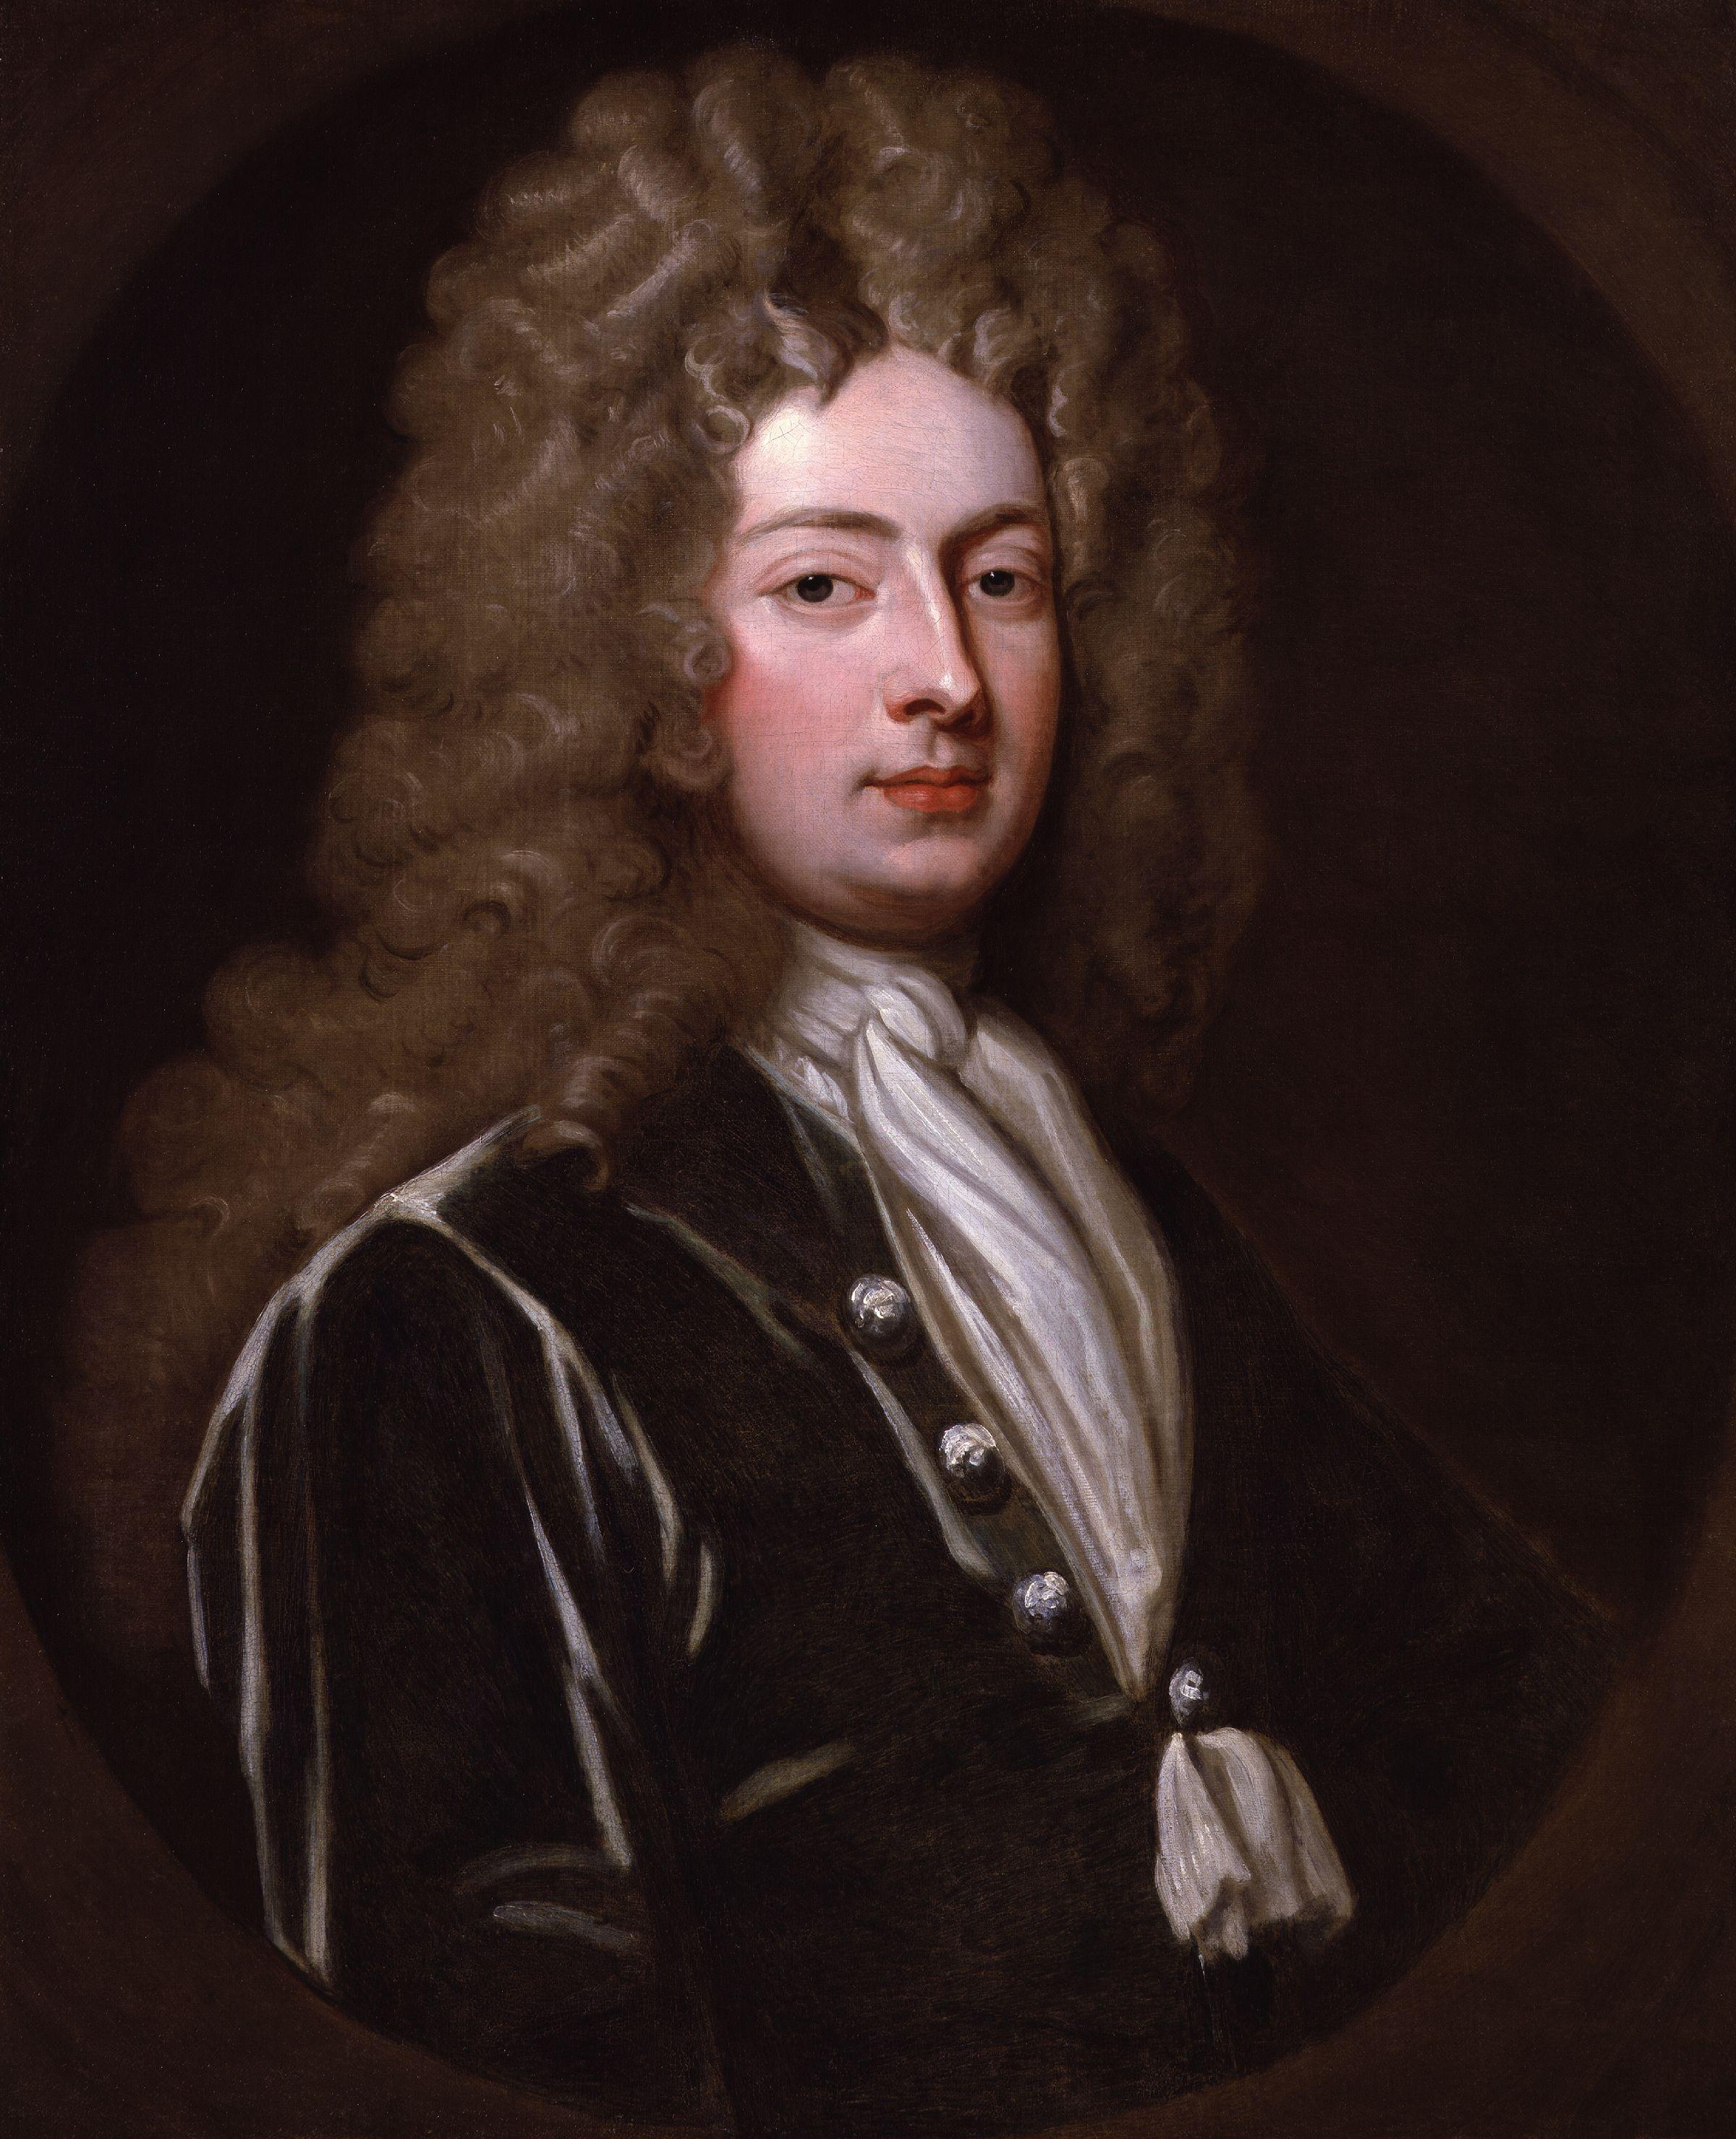 William Congreve in 1709 by [[Godfrey Kneller]]